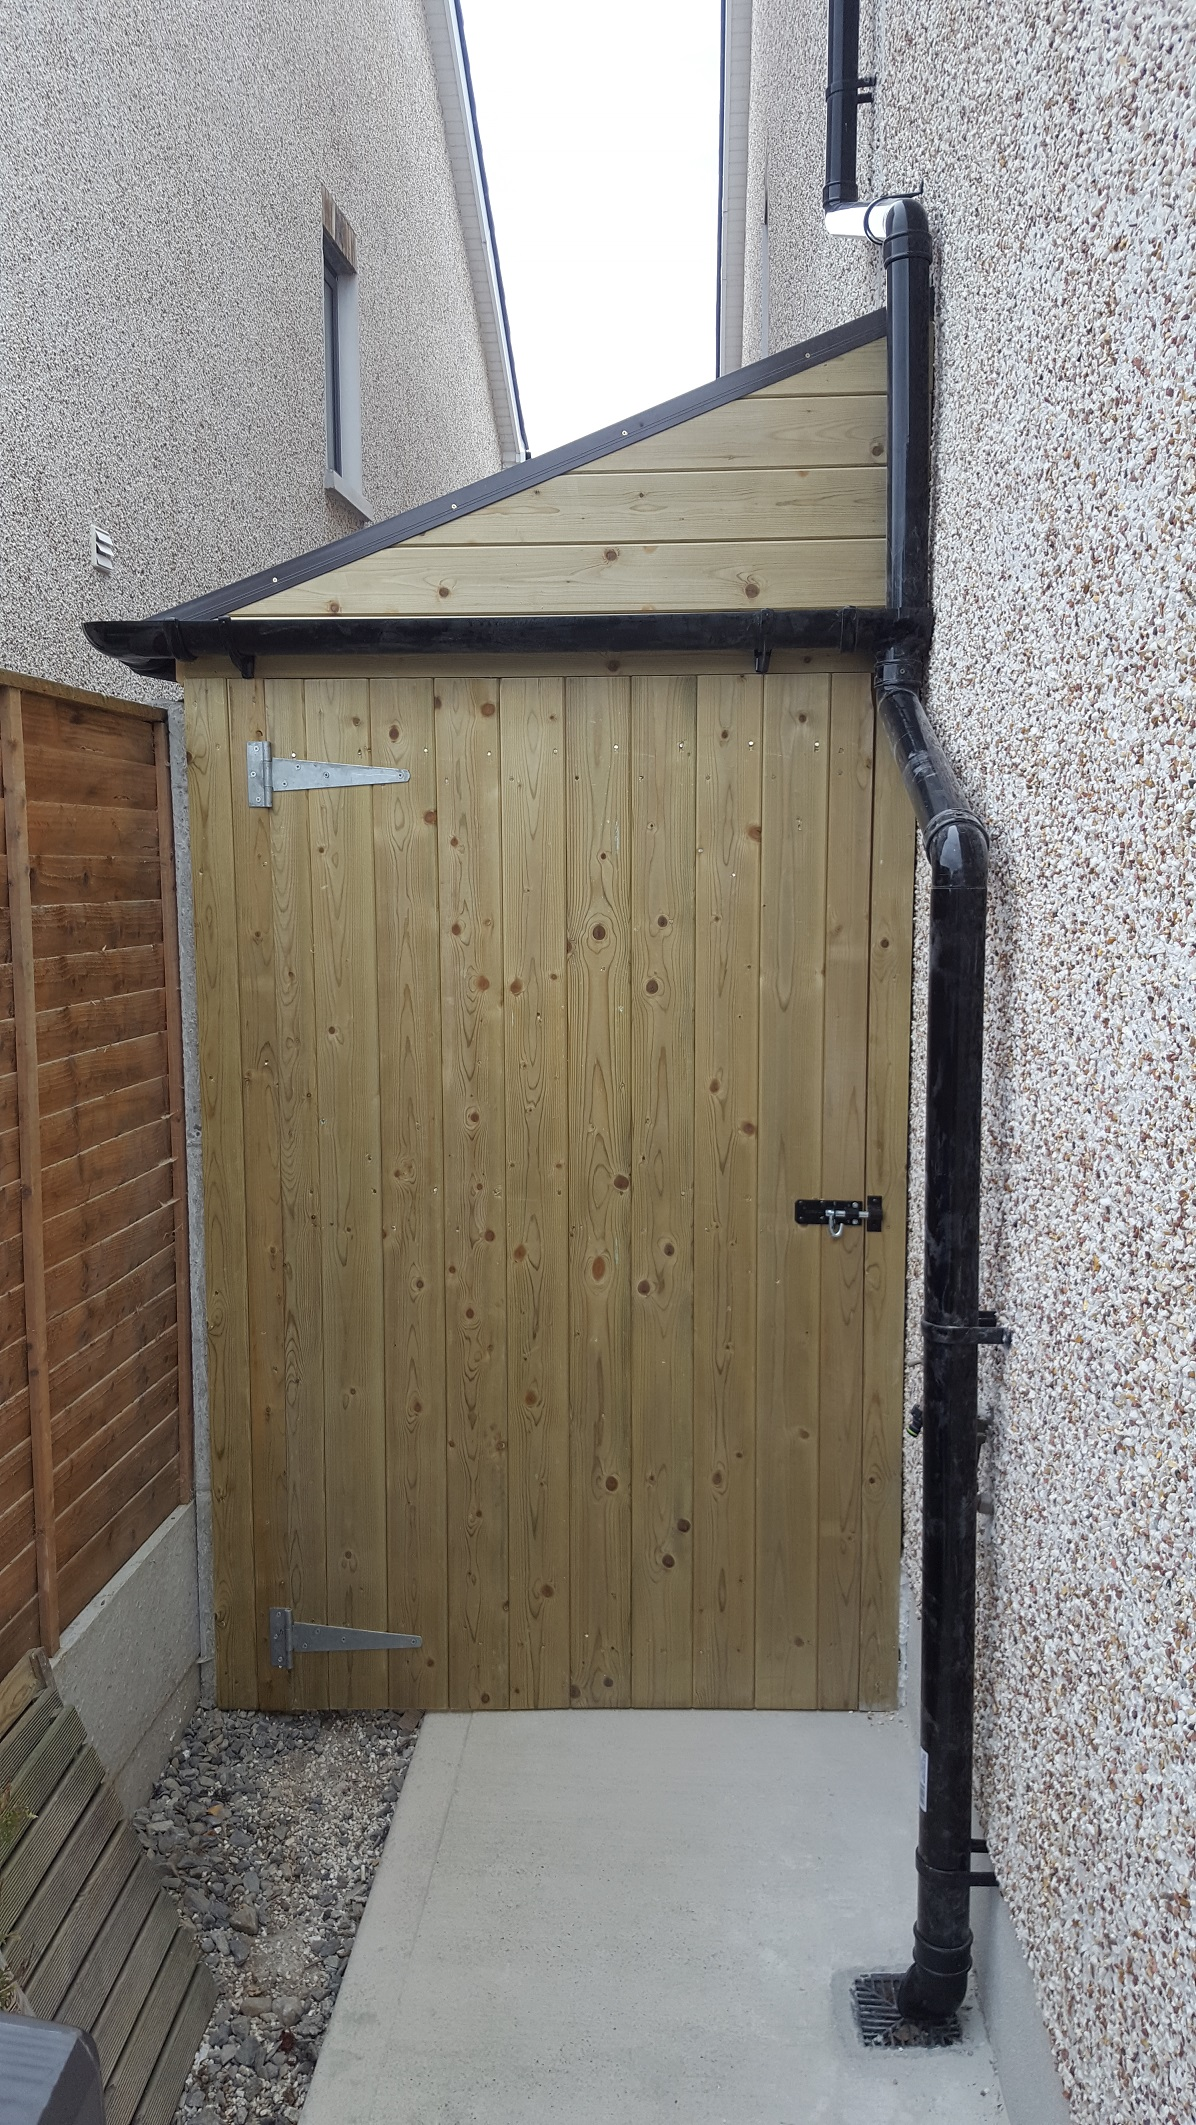 Side entrance passageway with roof, rain shelter, safe, secure bike or toy storage at side of house image 1